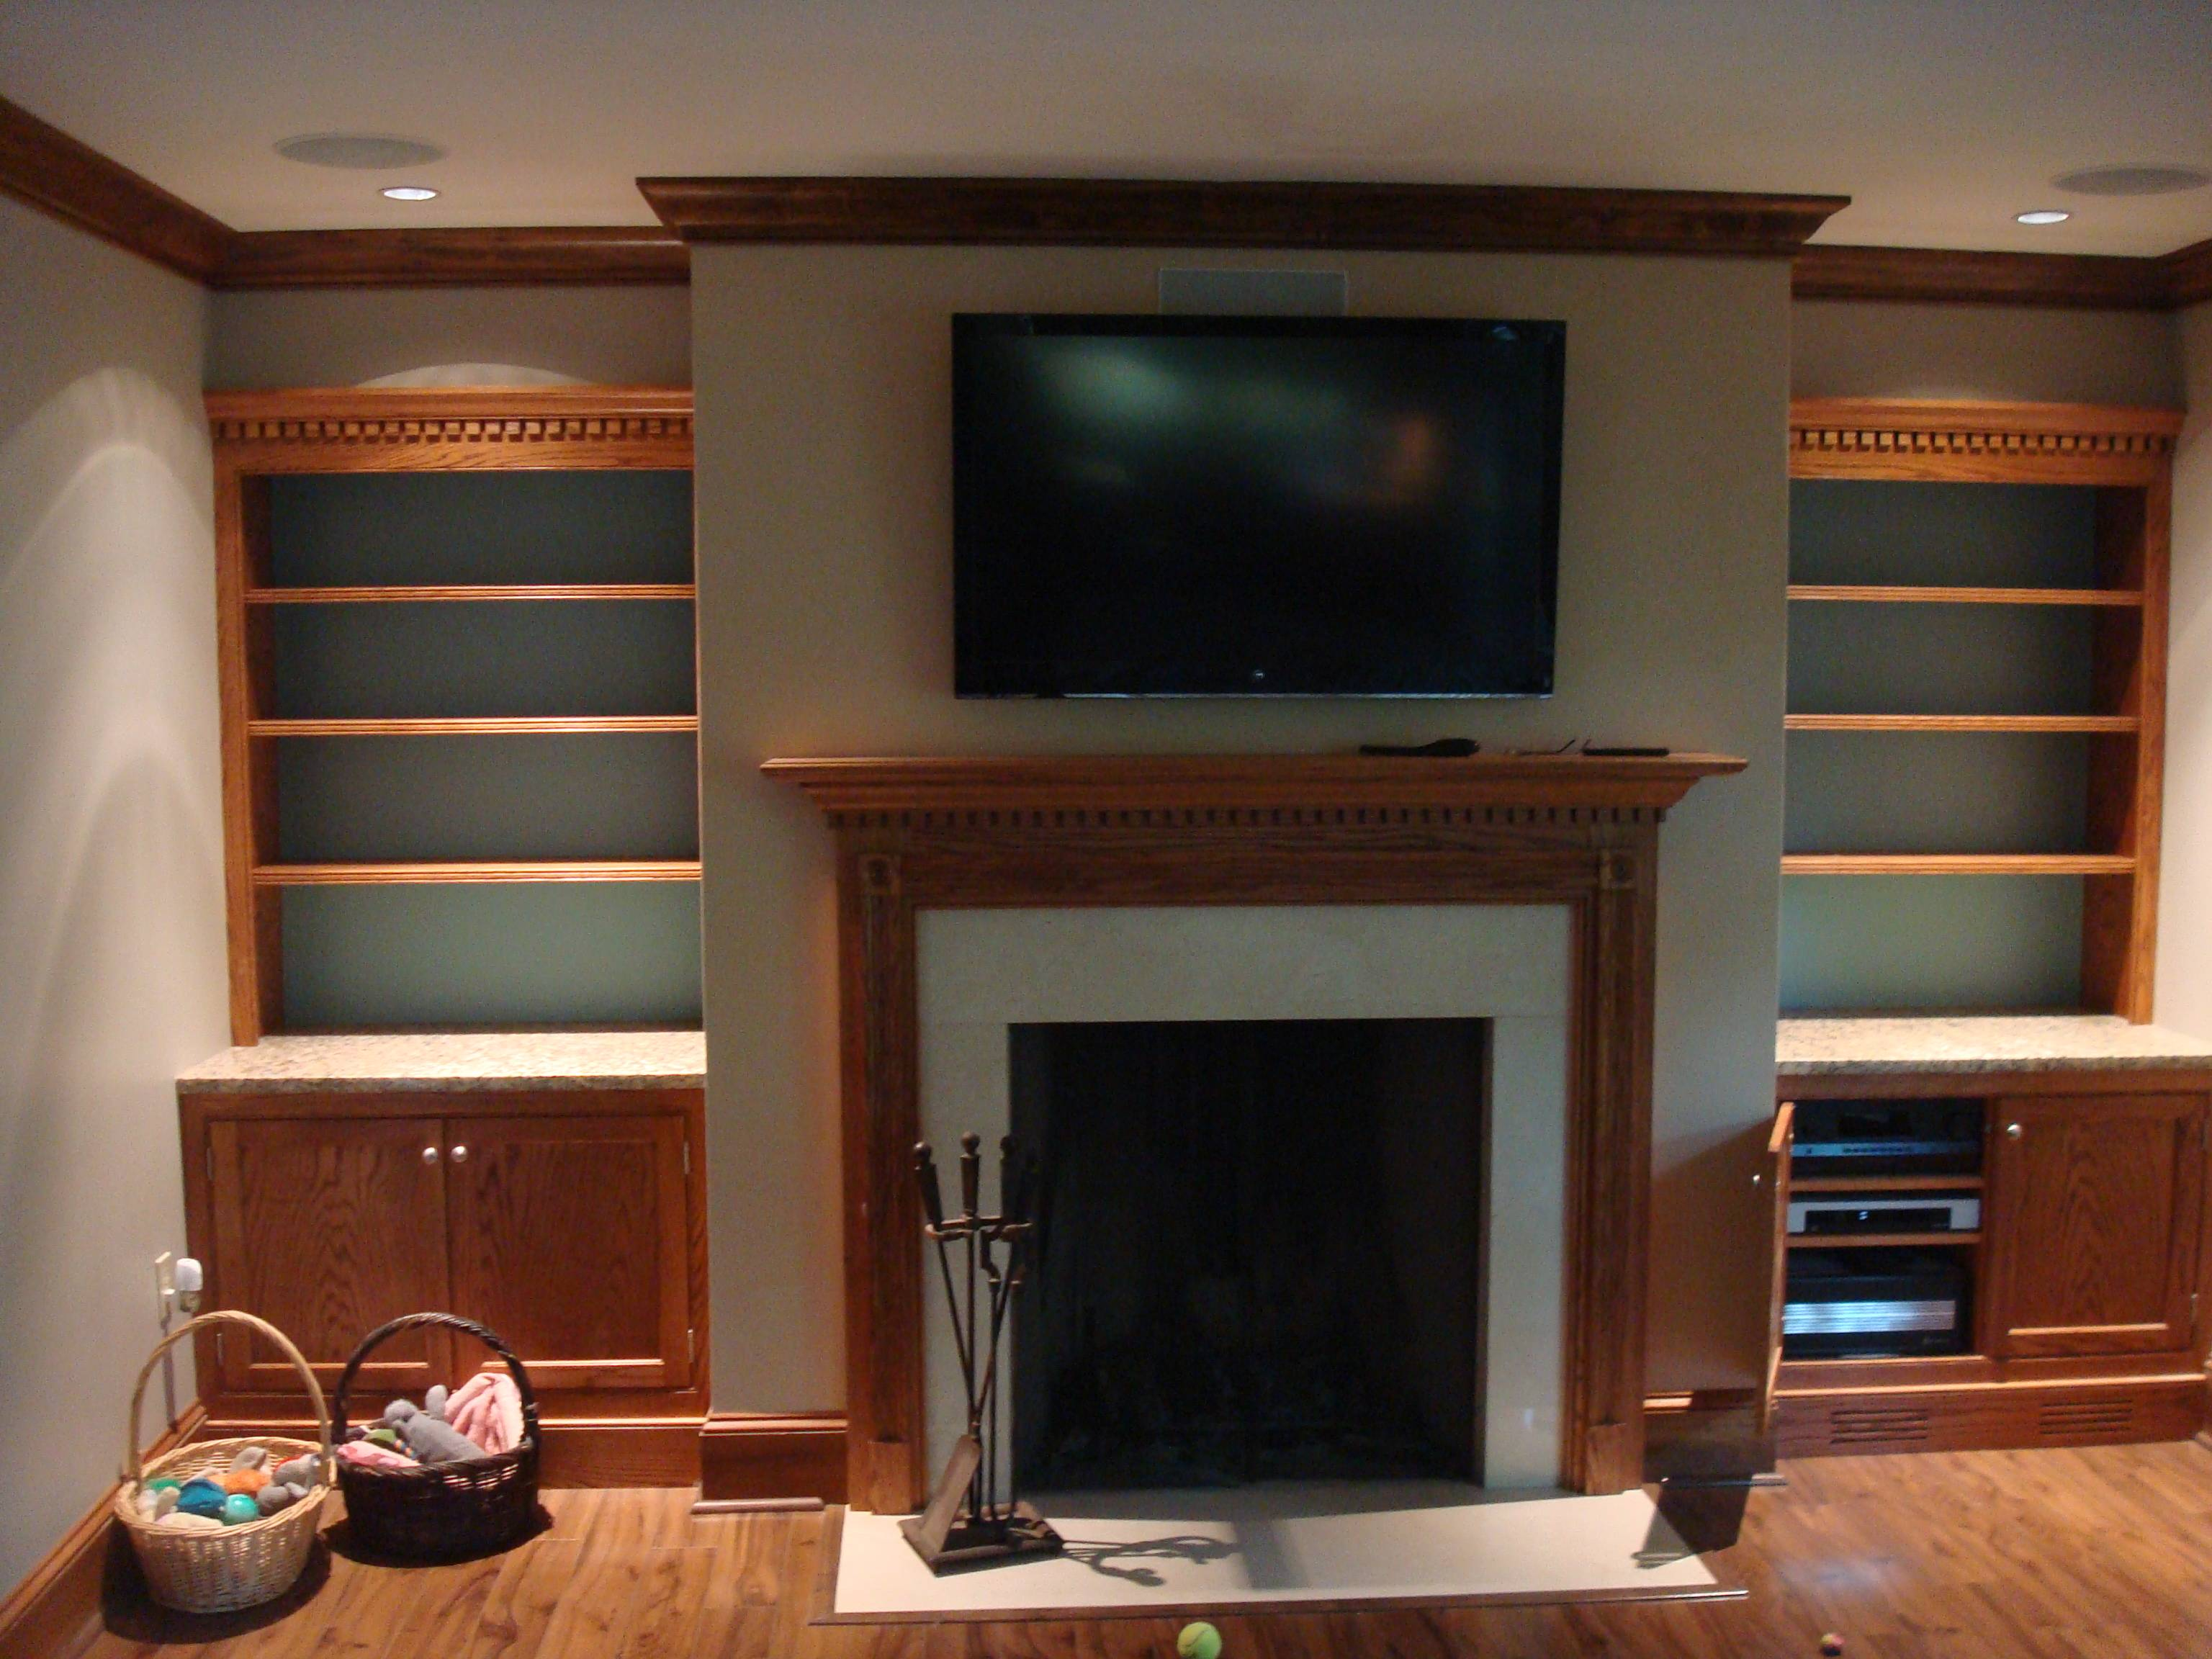 How do I mount a TV on a solid wood wall?